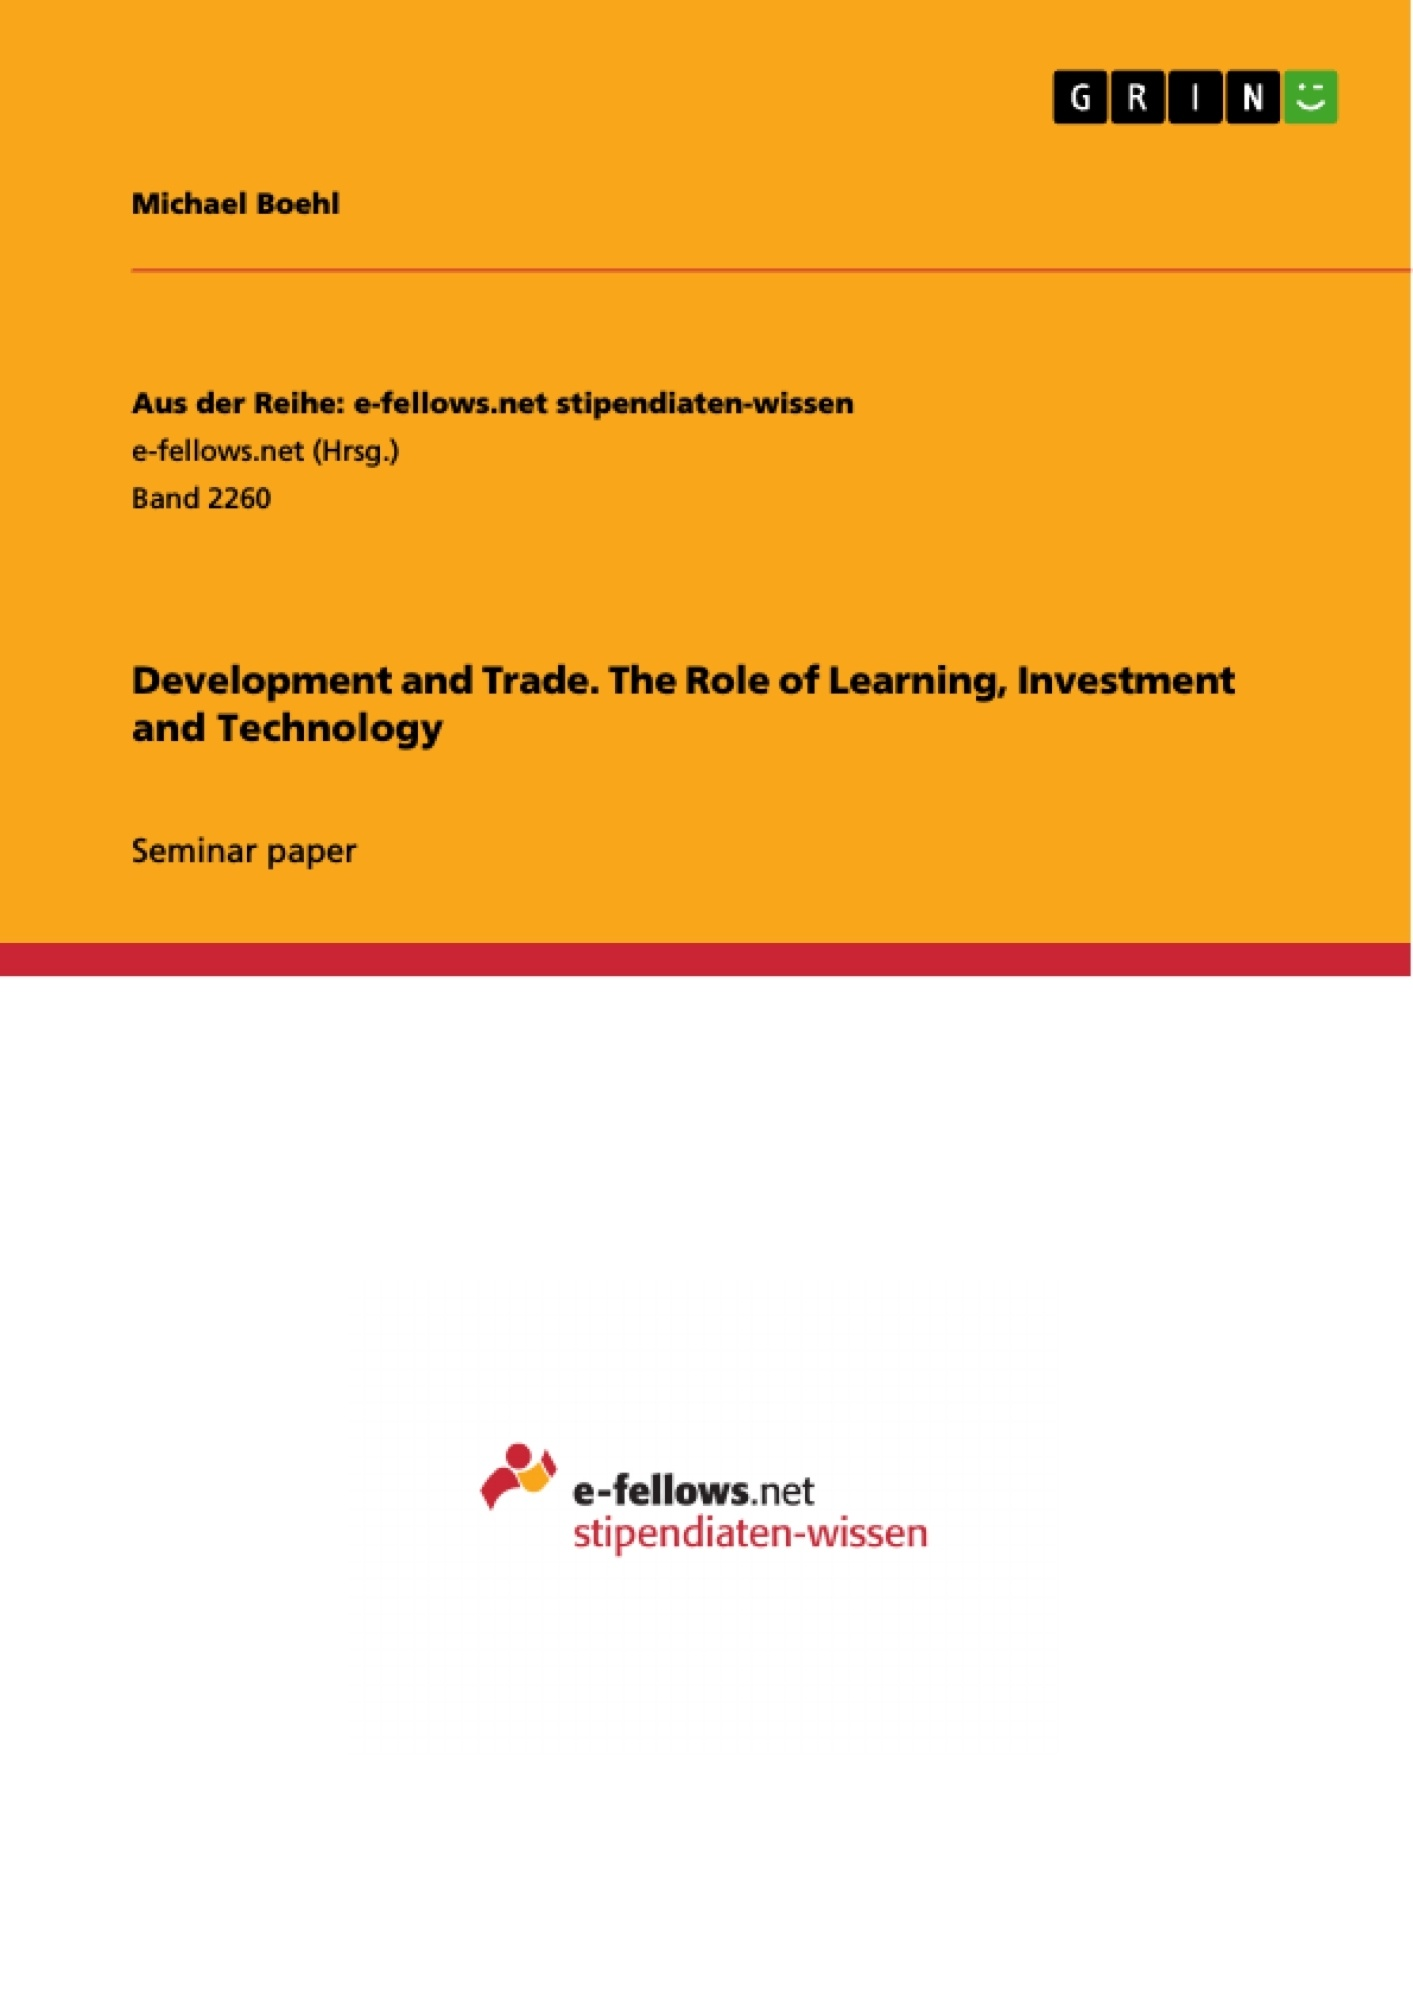 Title: Development and Trade. The Role of Learning, Investment and Technology